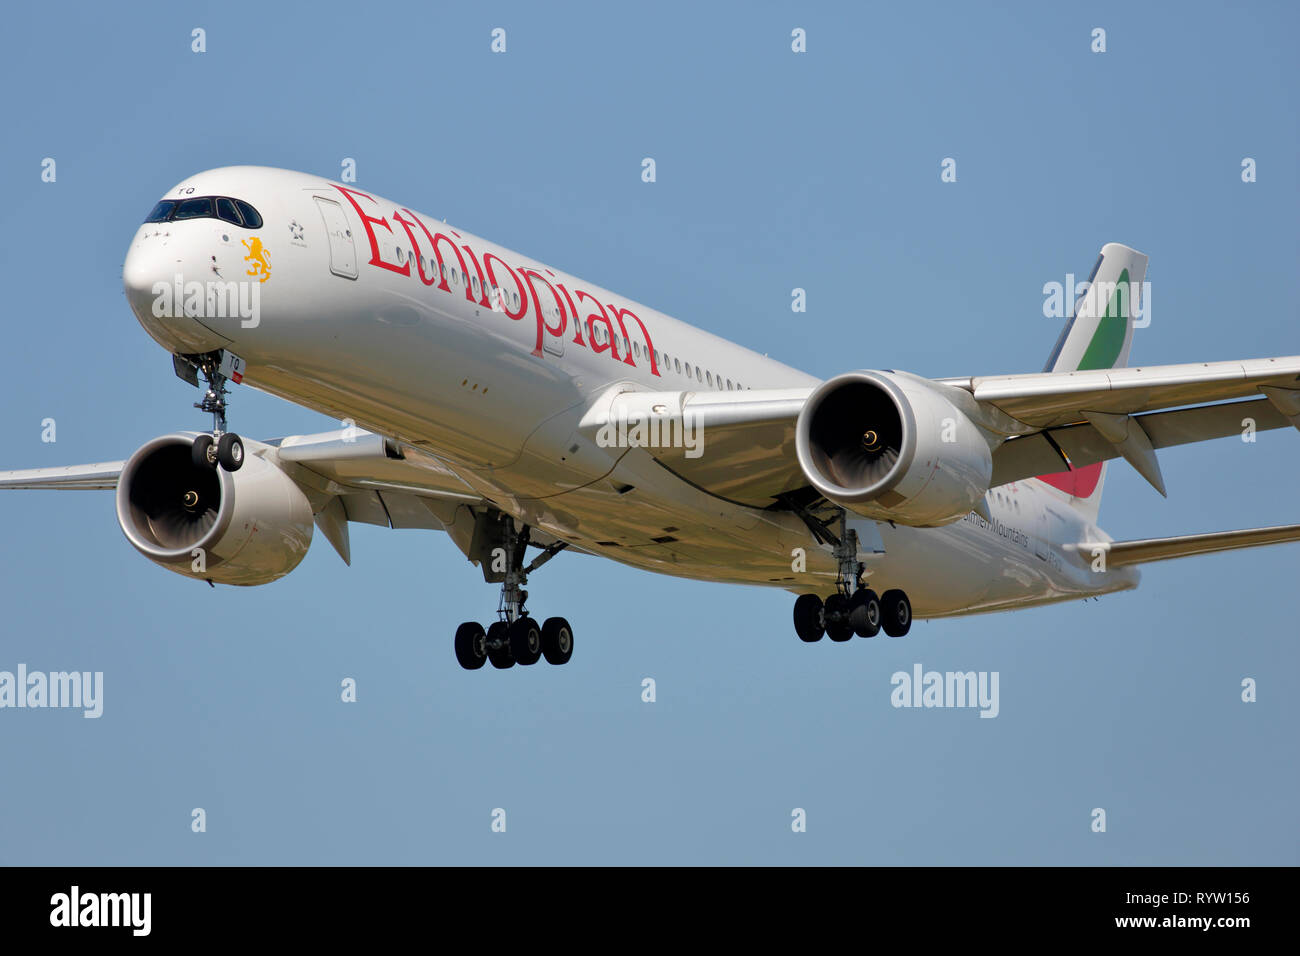 ET-ATQ Ethiopian Airlines Airbus A350-900 arriving at London Heathrow airport UK - Stock Image